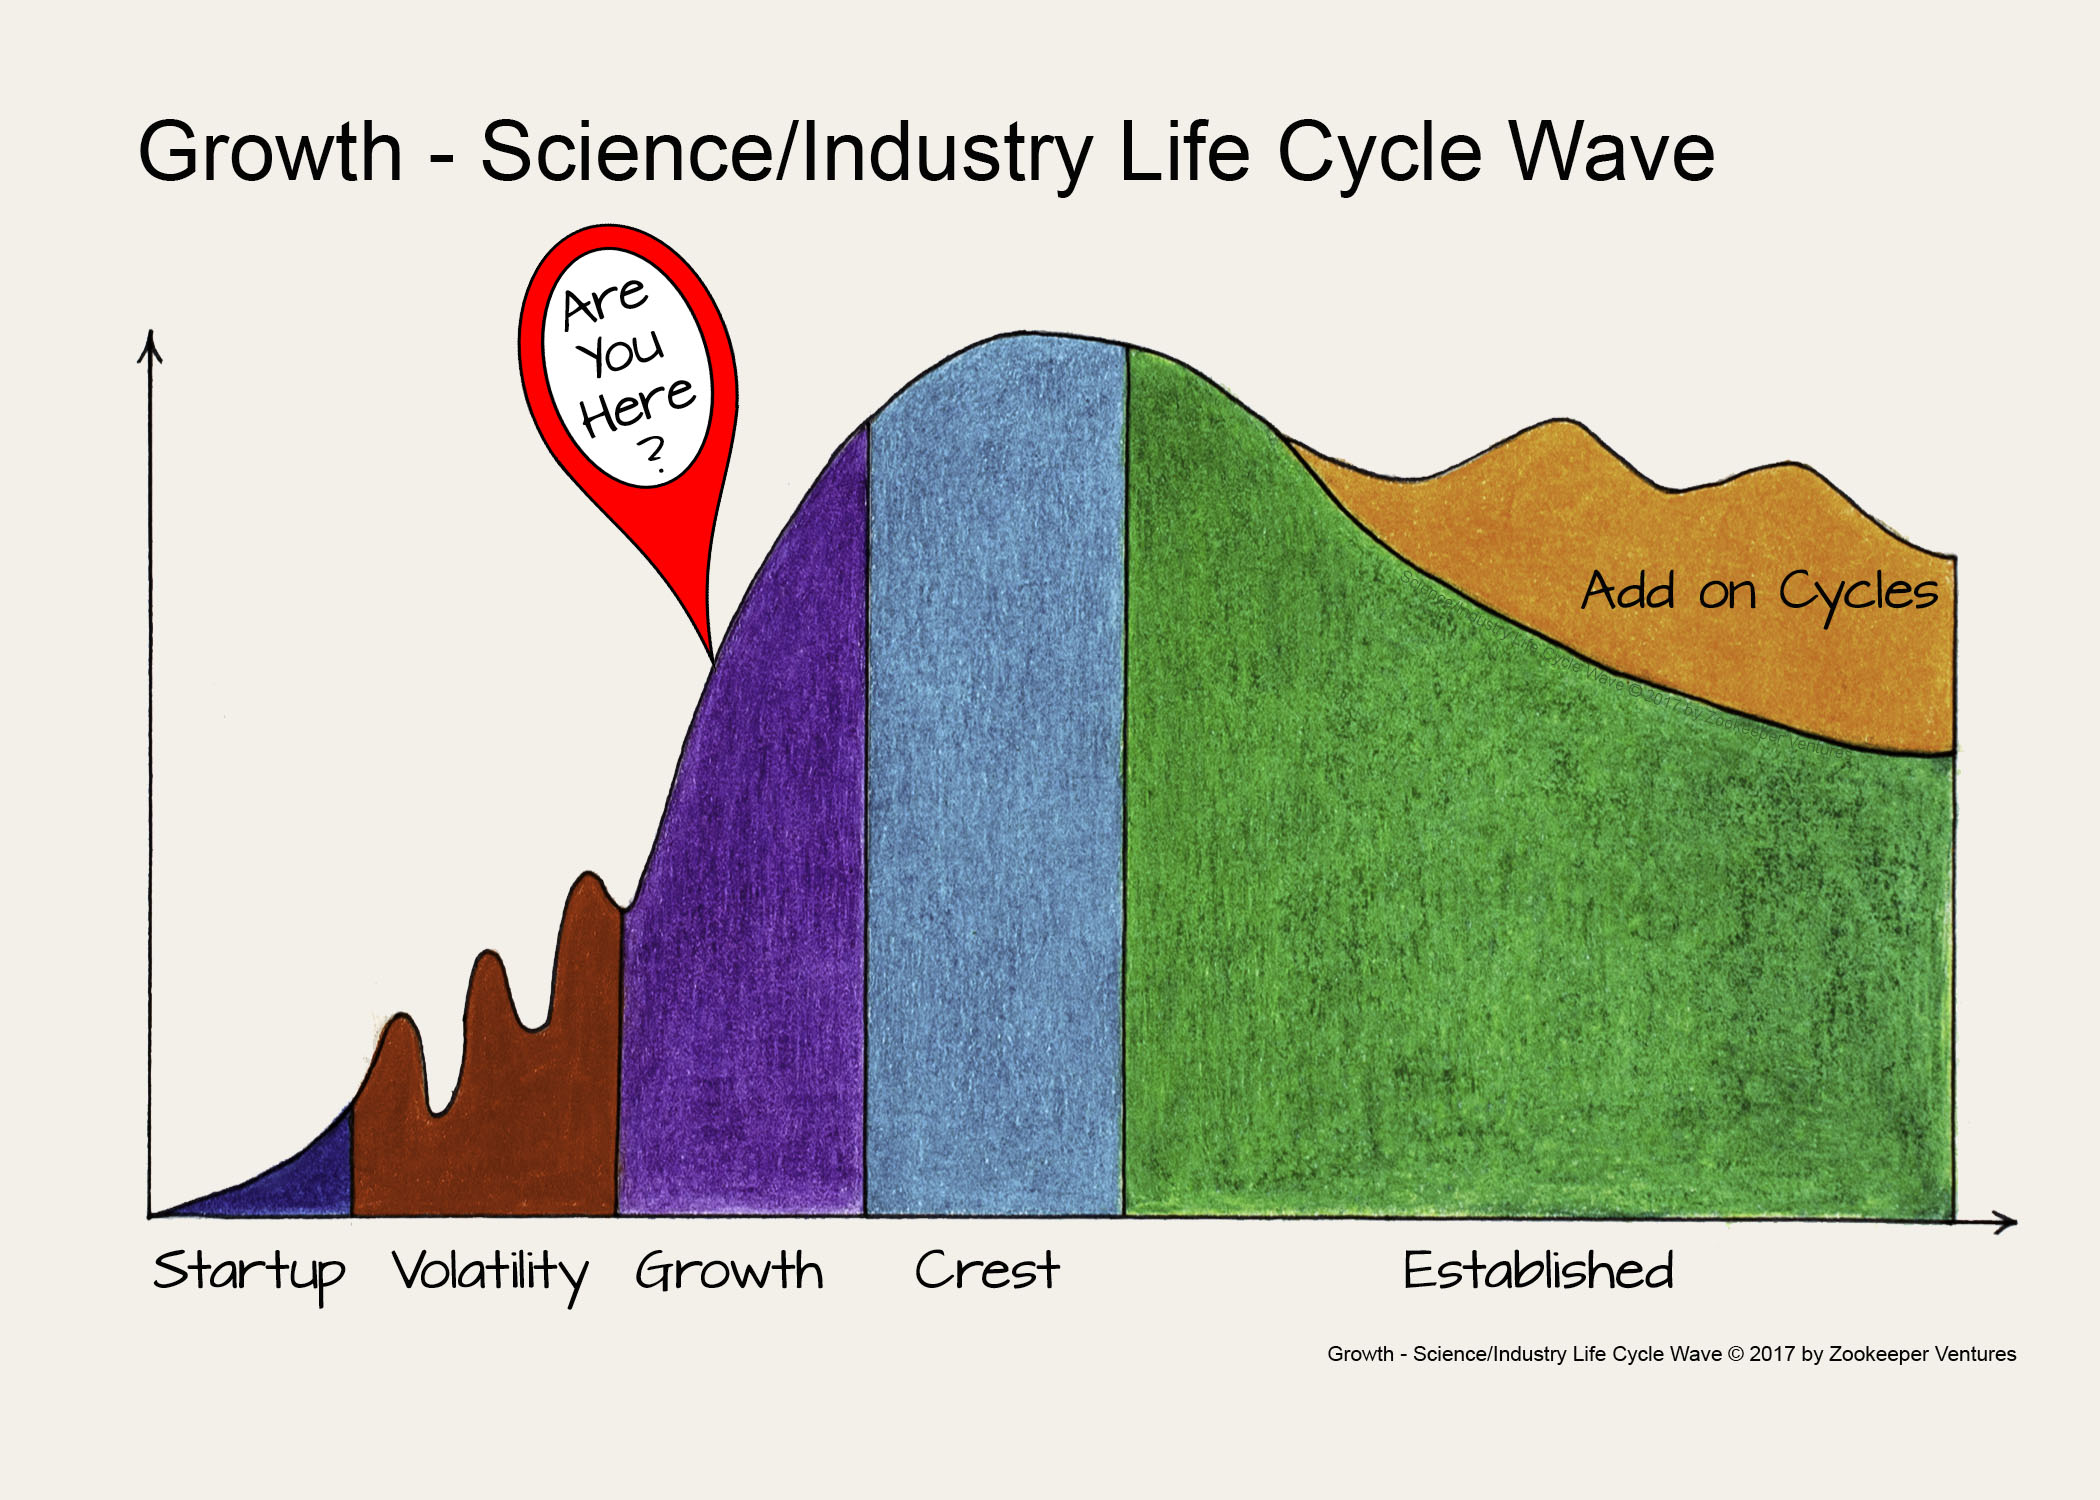 Growth - ScienceIndustry Life Cycle Wave